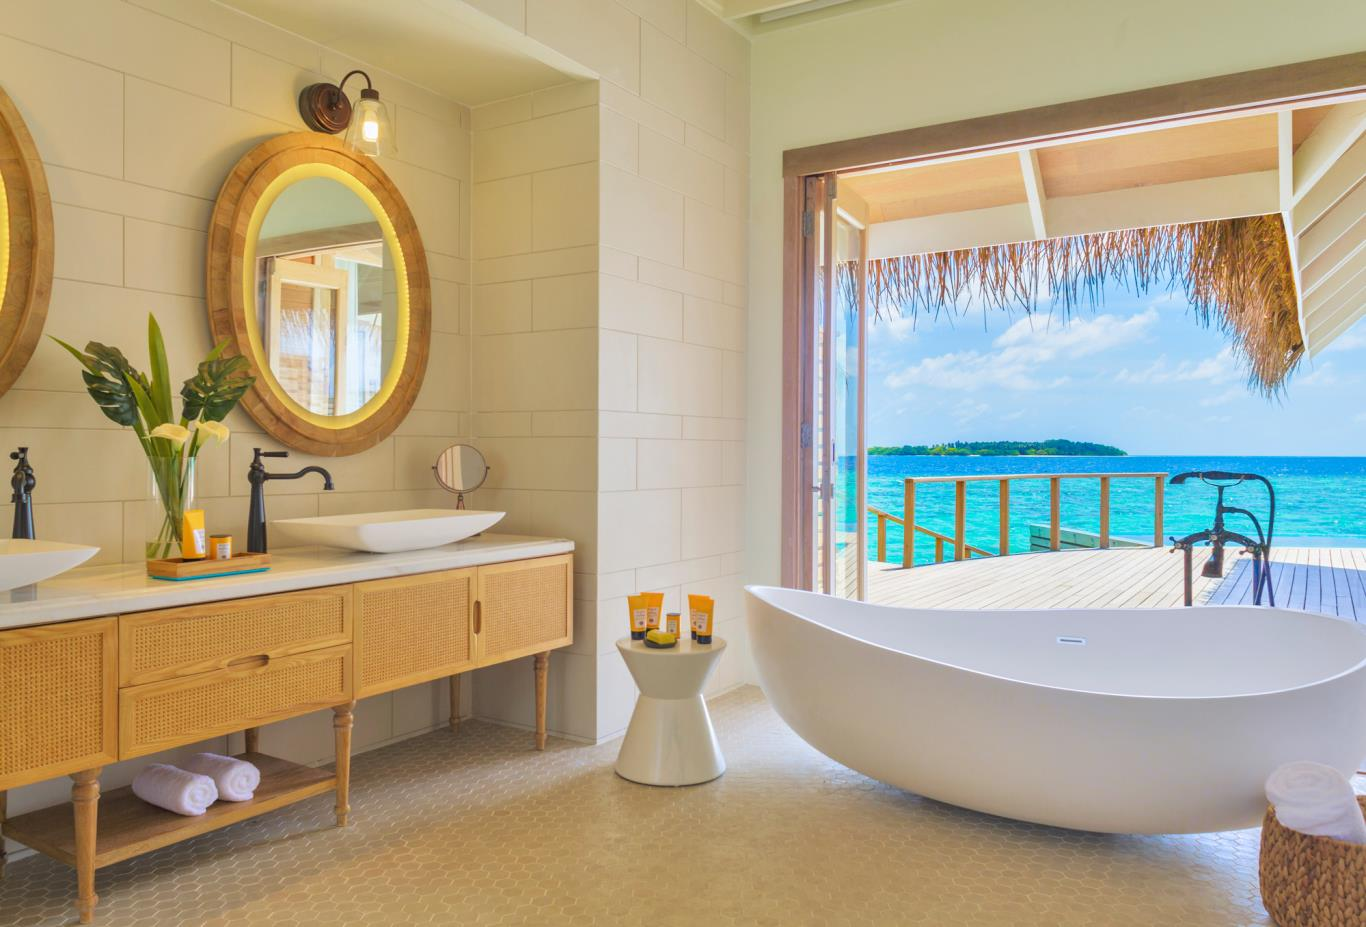 Water pool villa bathroom bathtub